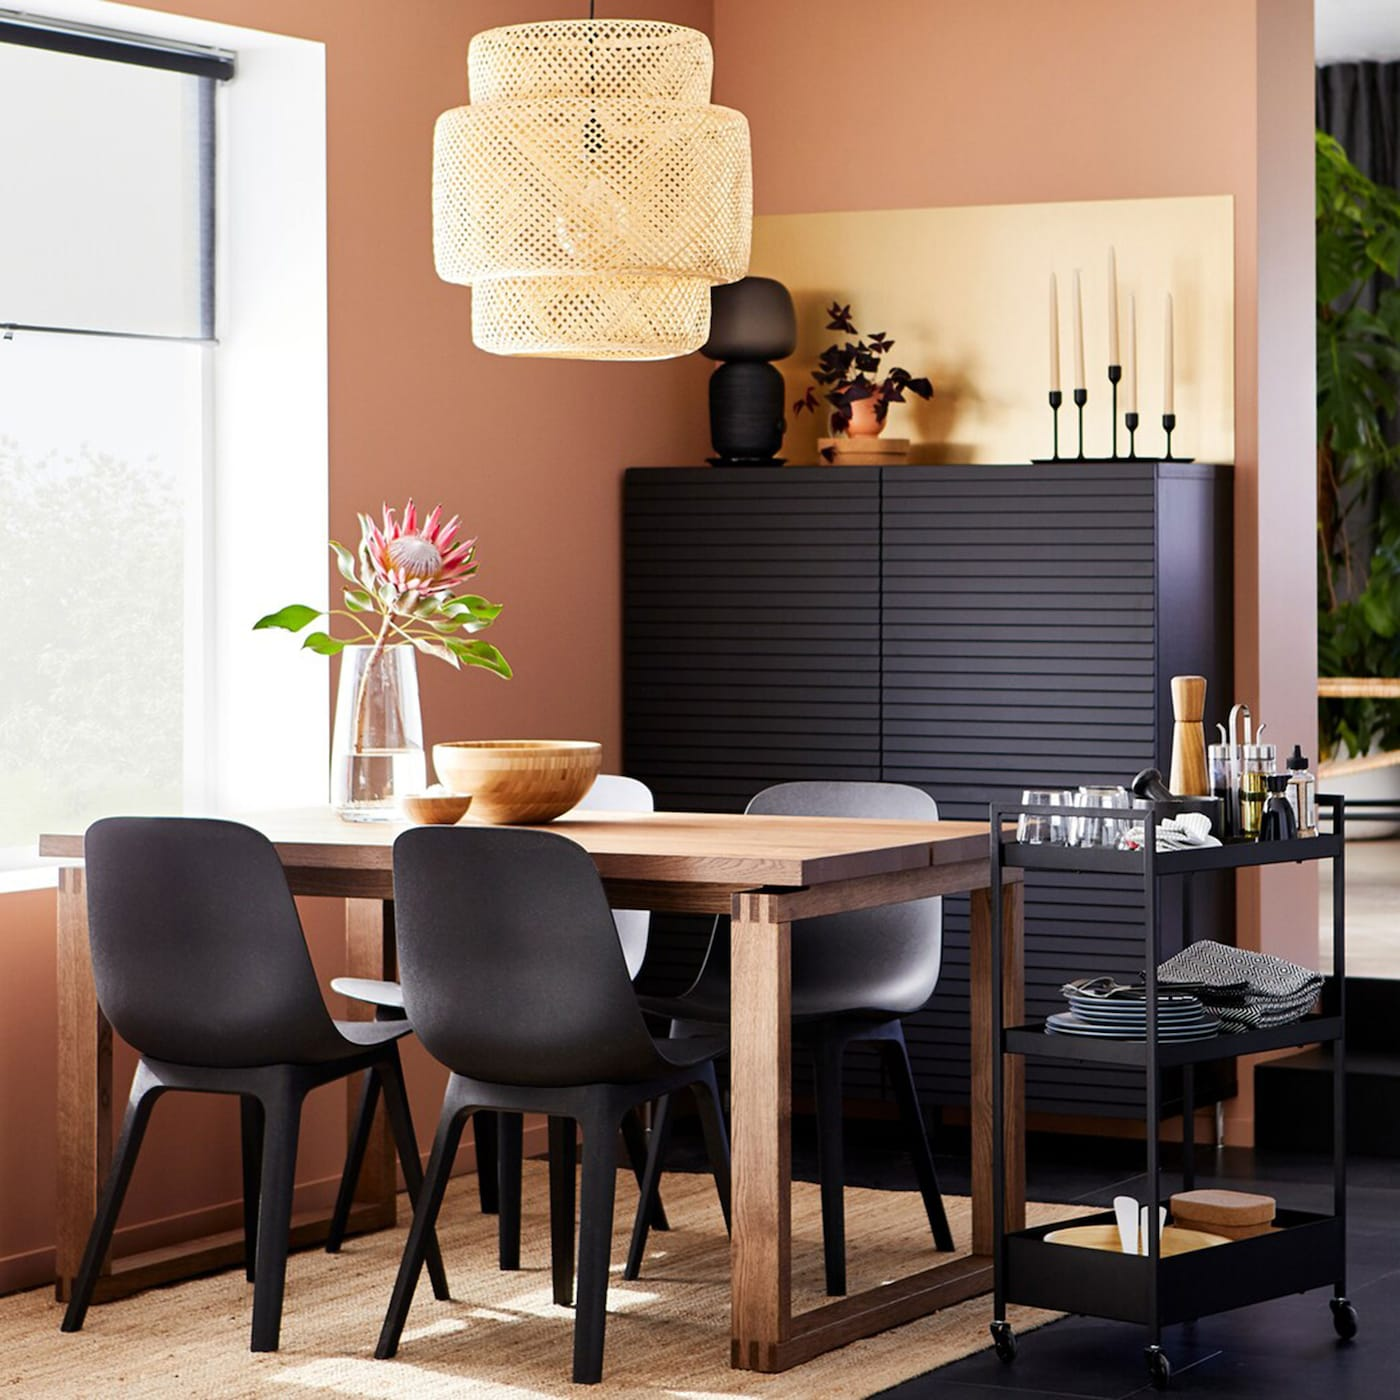 An earthy and sustainability focused dining room - IKEA